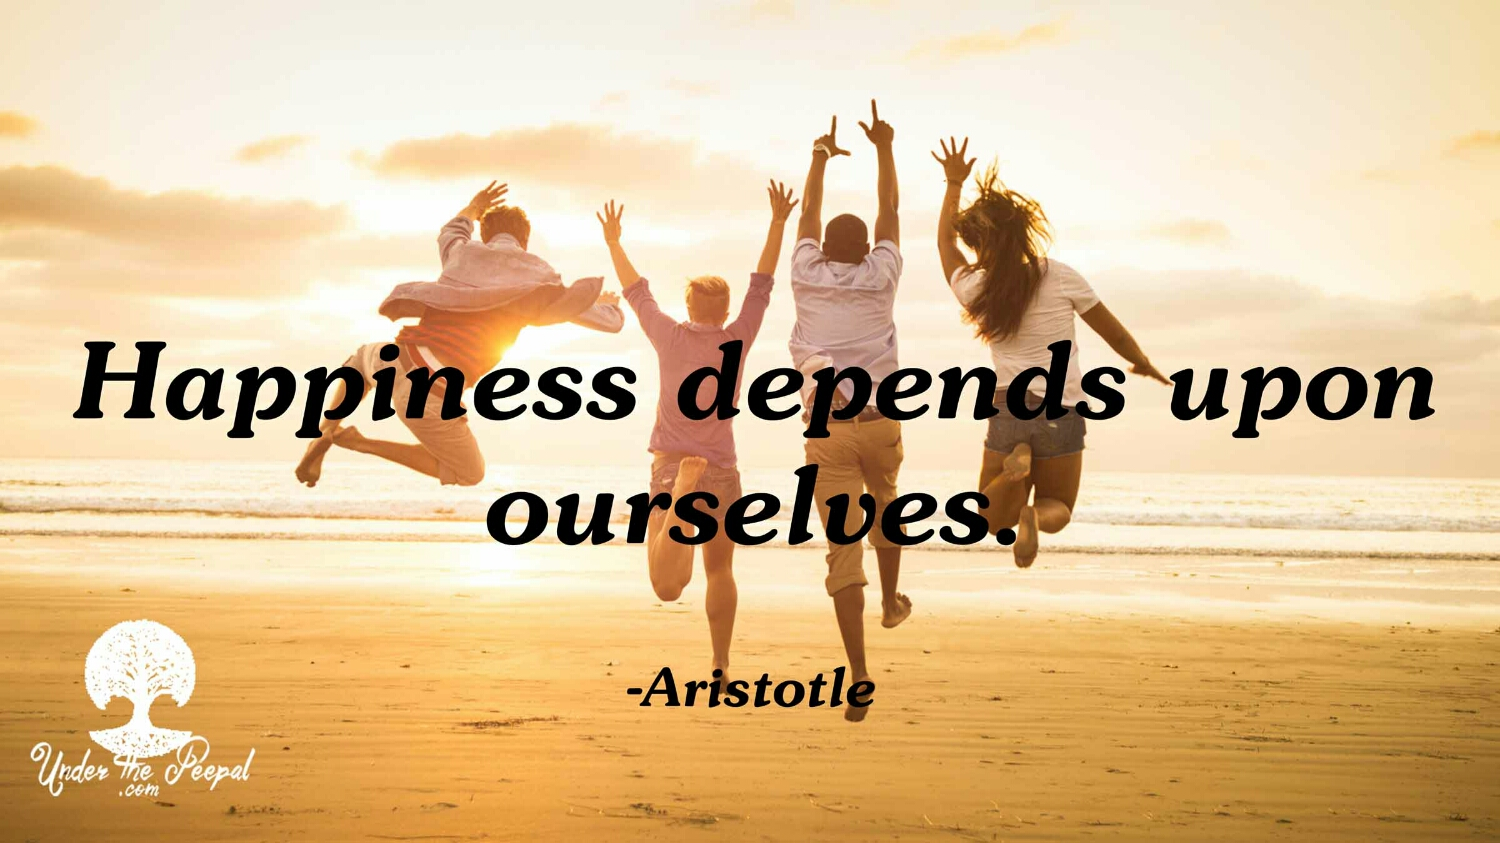 Happiness depends on ourselves quote- Aristotle